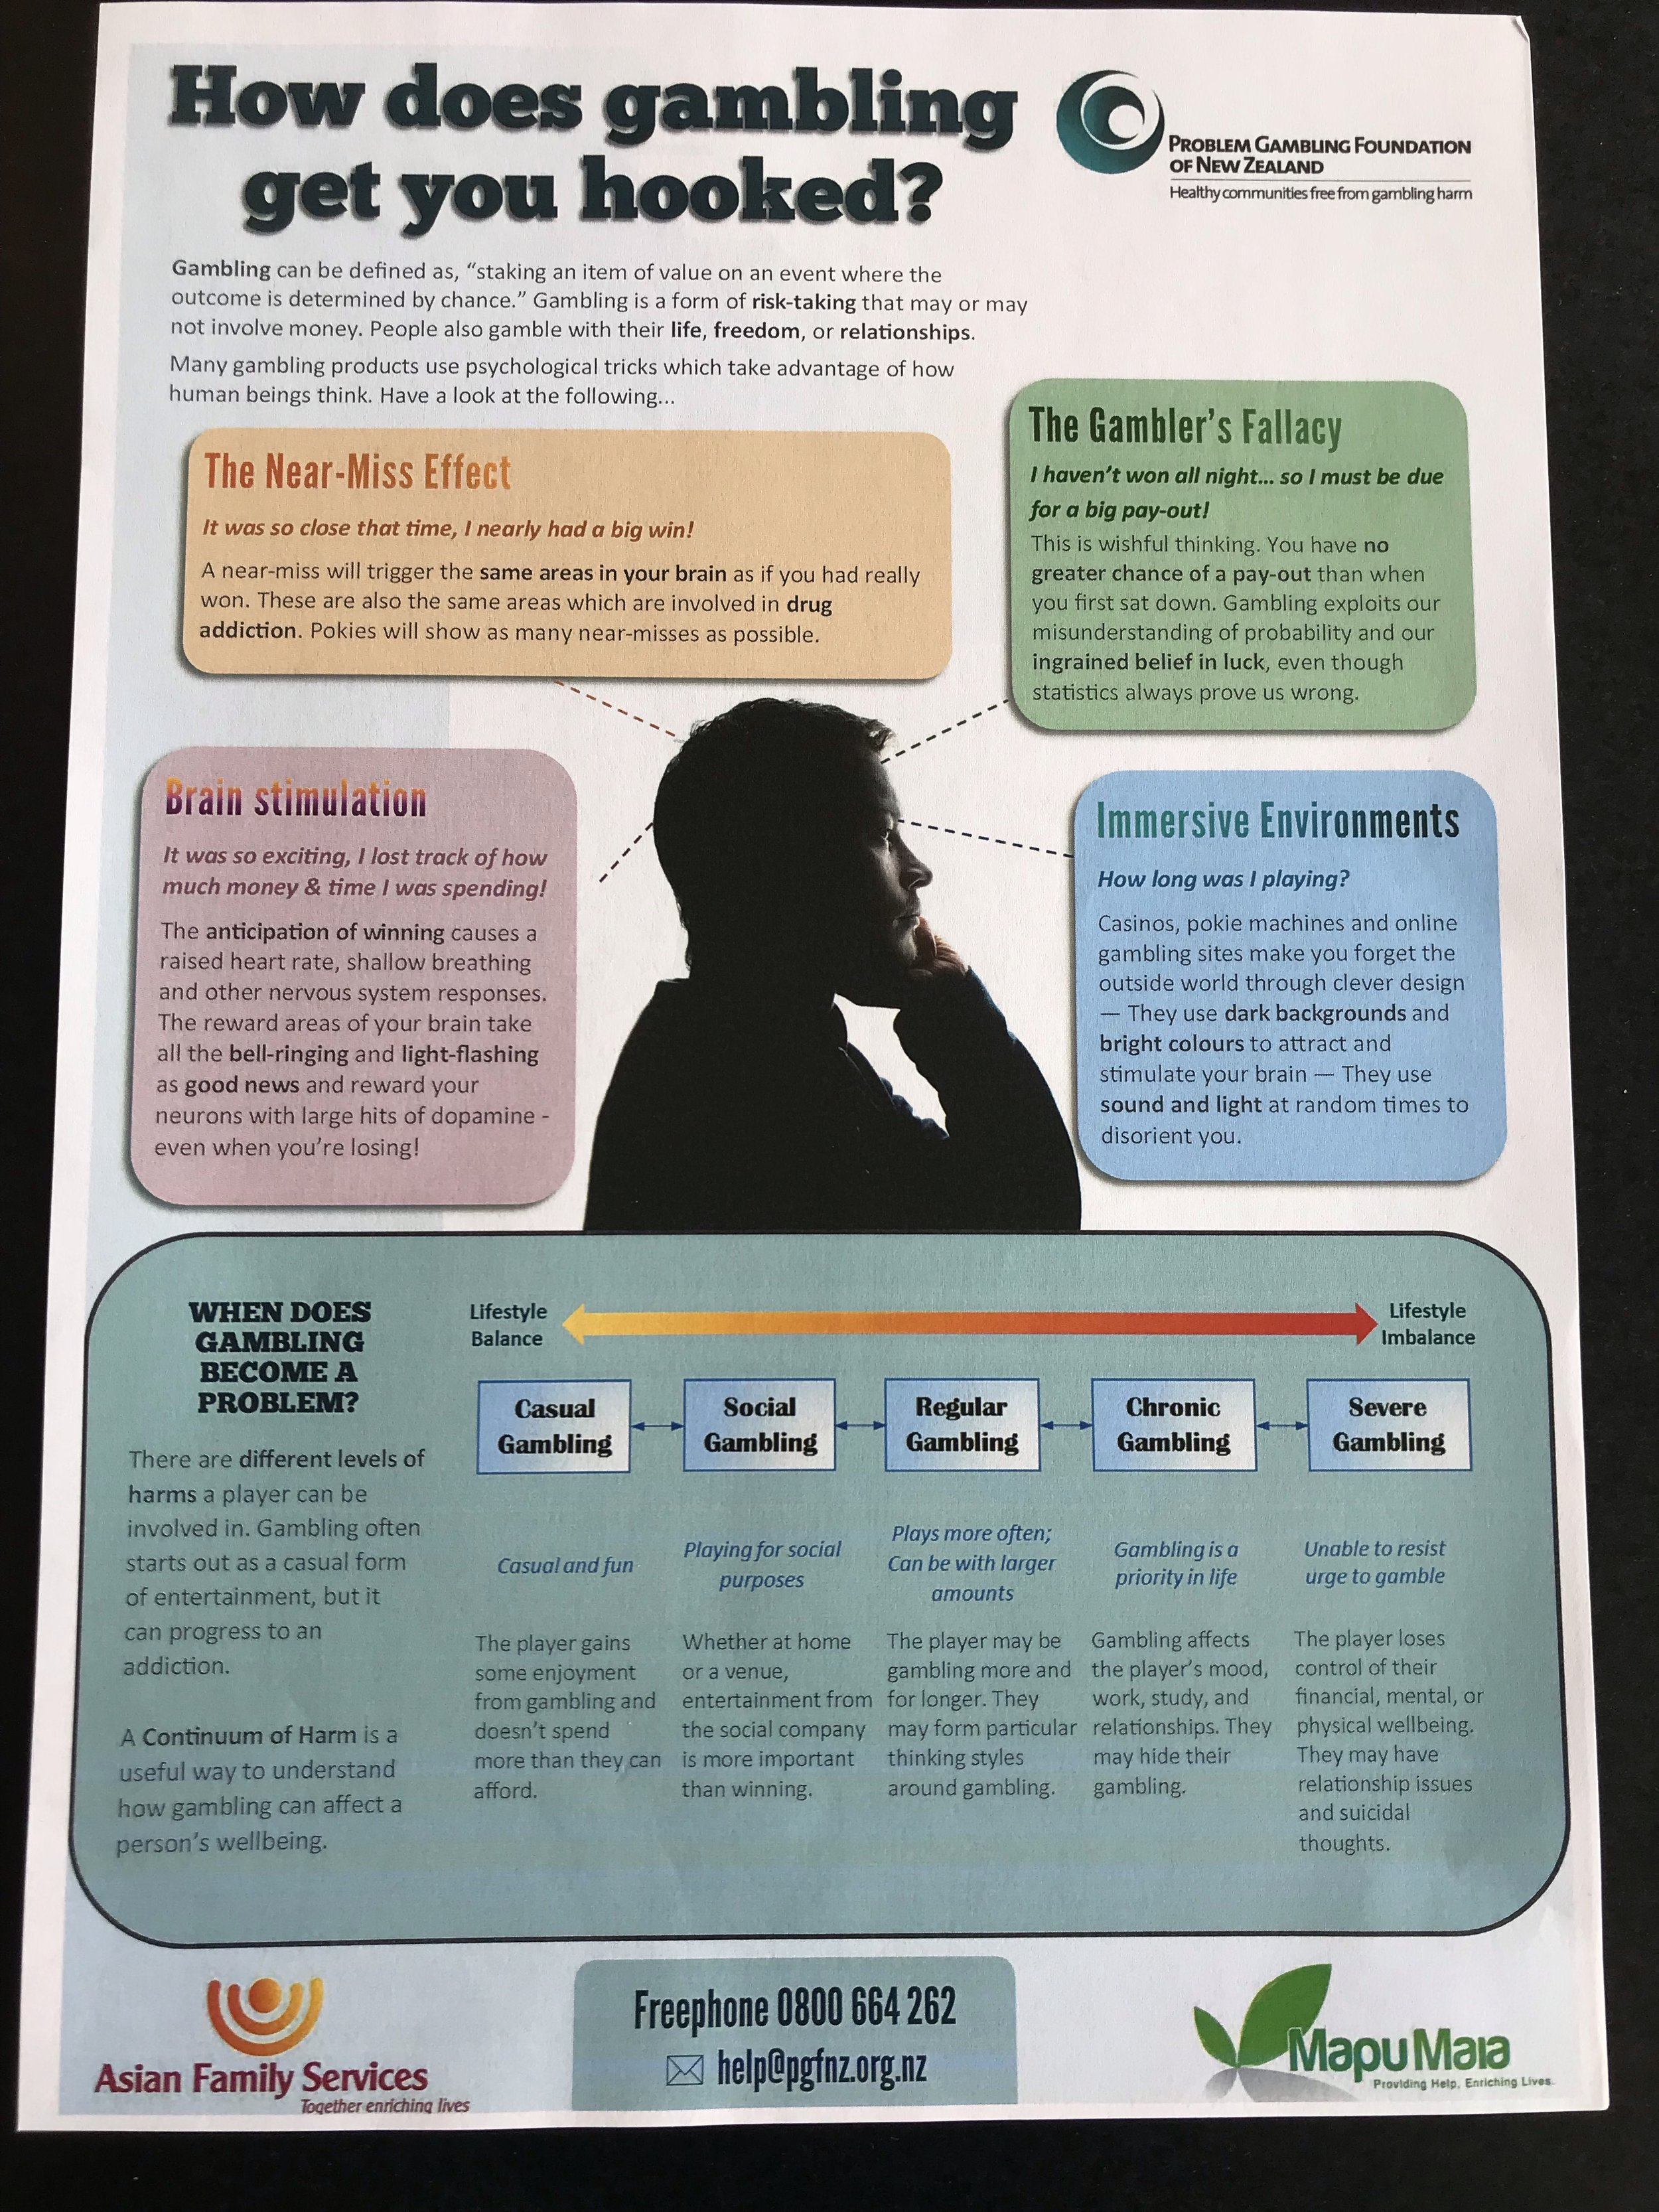 One of the informative handouts from the Problem Gambling Foundation